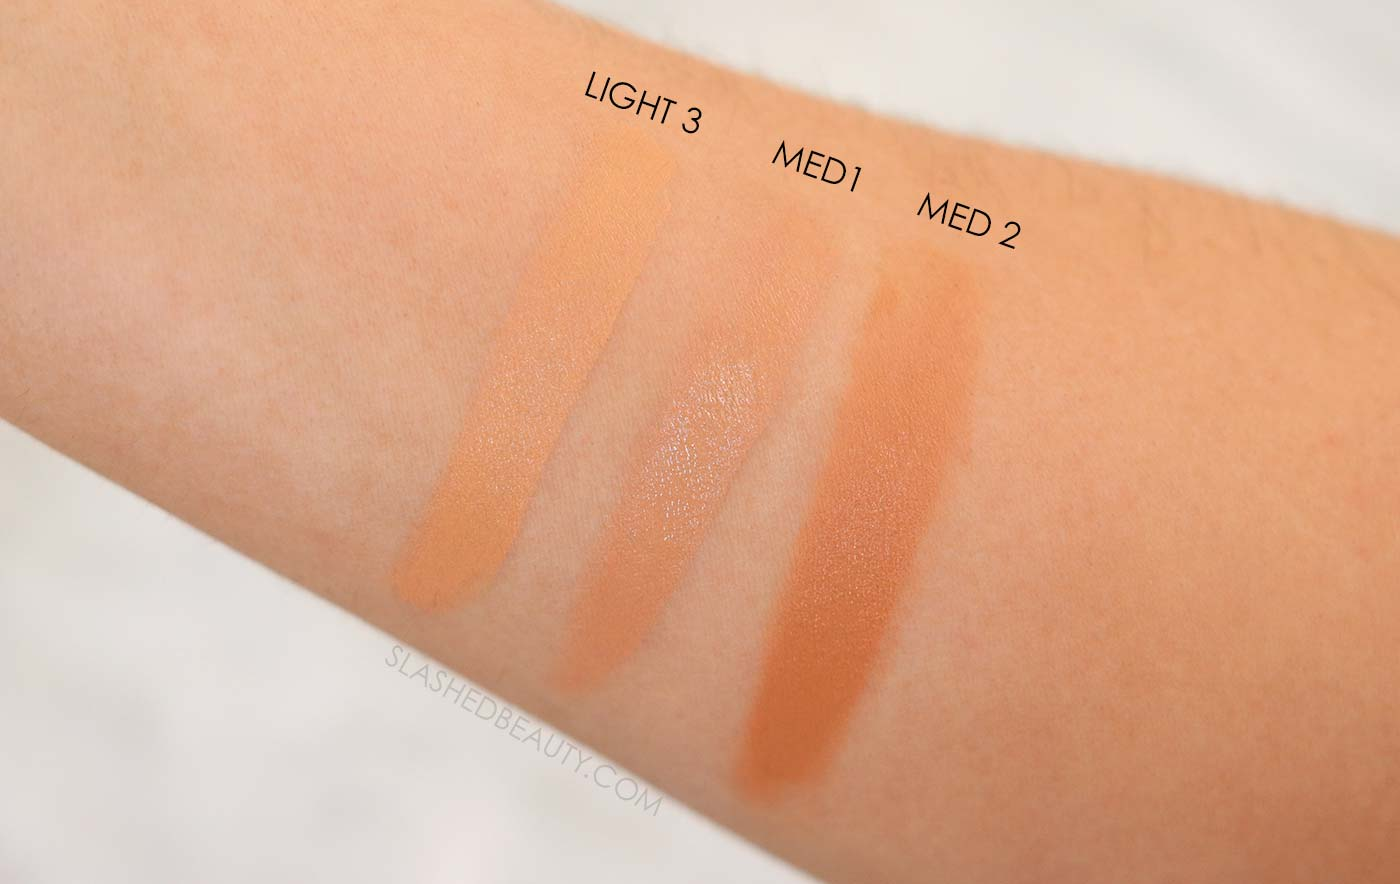 REVIEW: L'Oreal Skin Paradise Water Infused Tinted Moisturizer for Combo Skin | Swatches Light 3, Medium1, Medium 2 | Slashed Beauty